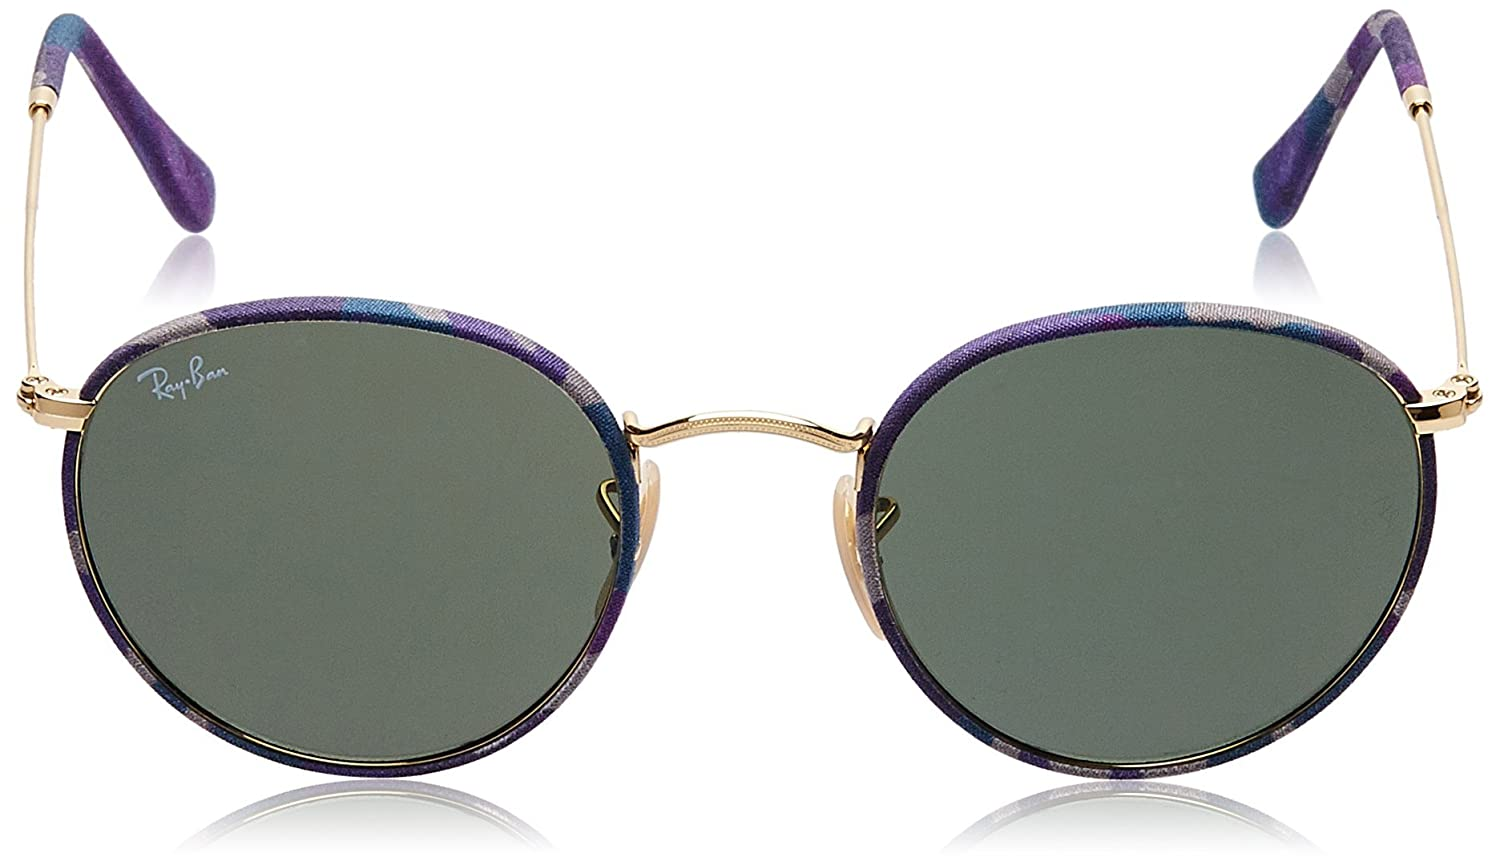 74cee697d0 Ray-Ban 0RB3447JM Square Sunglasses, Camouflage Violet & Blue, 50 mm: Ray- Ban: Amazon.com.mx: Ropa, Zapatos y Accesorios